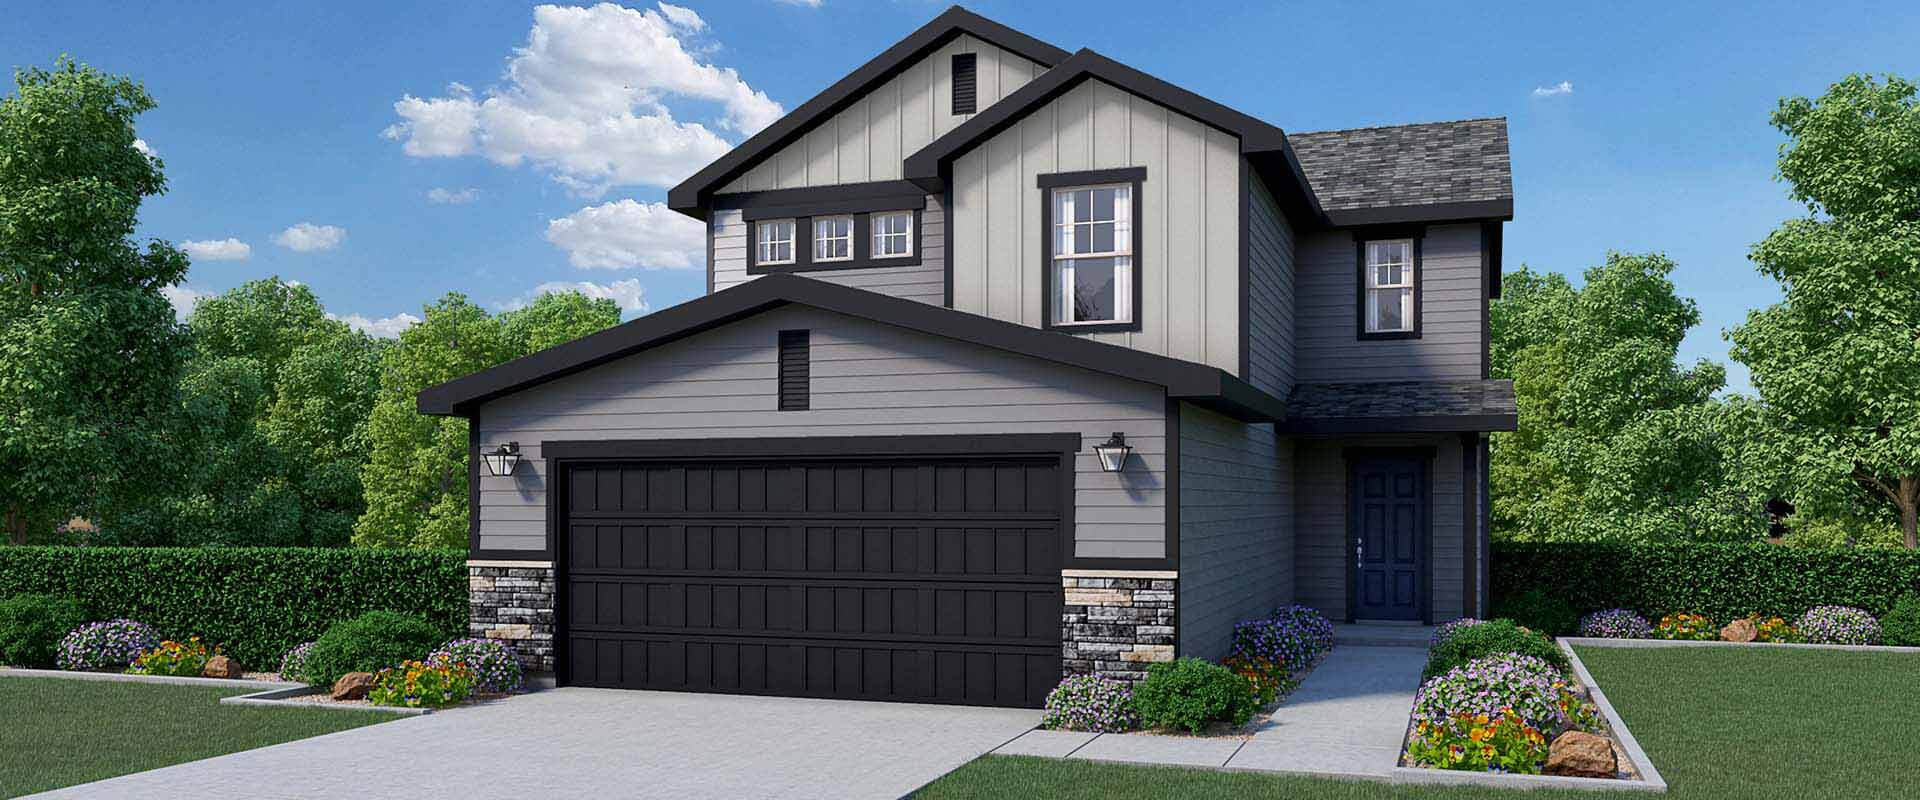 Payette-new-homes-boise-idaho-hubble-homes-traditional.jpg